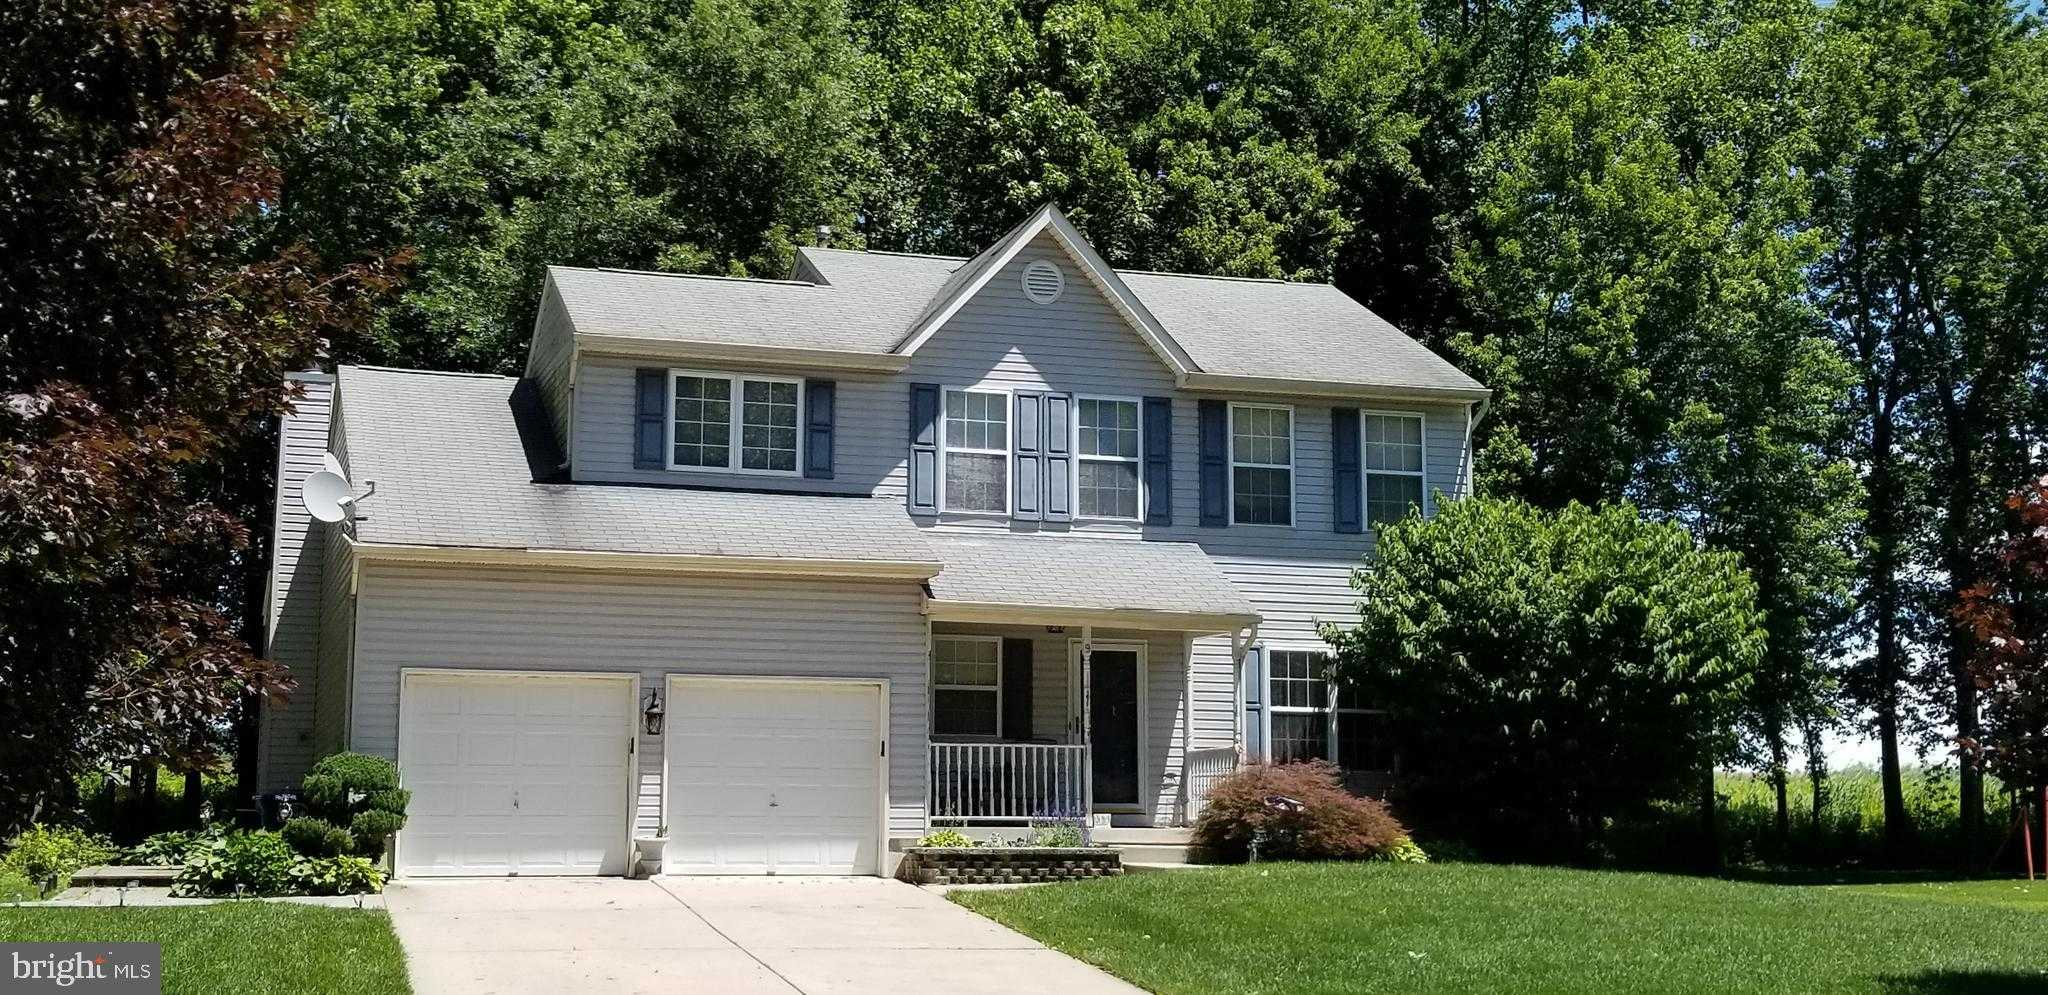 $290,000 - 3Br/3Ba -  for Sale in None Available, Burlington